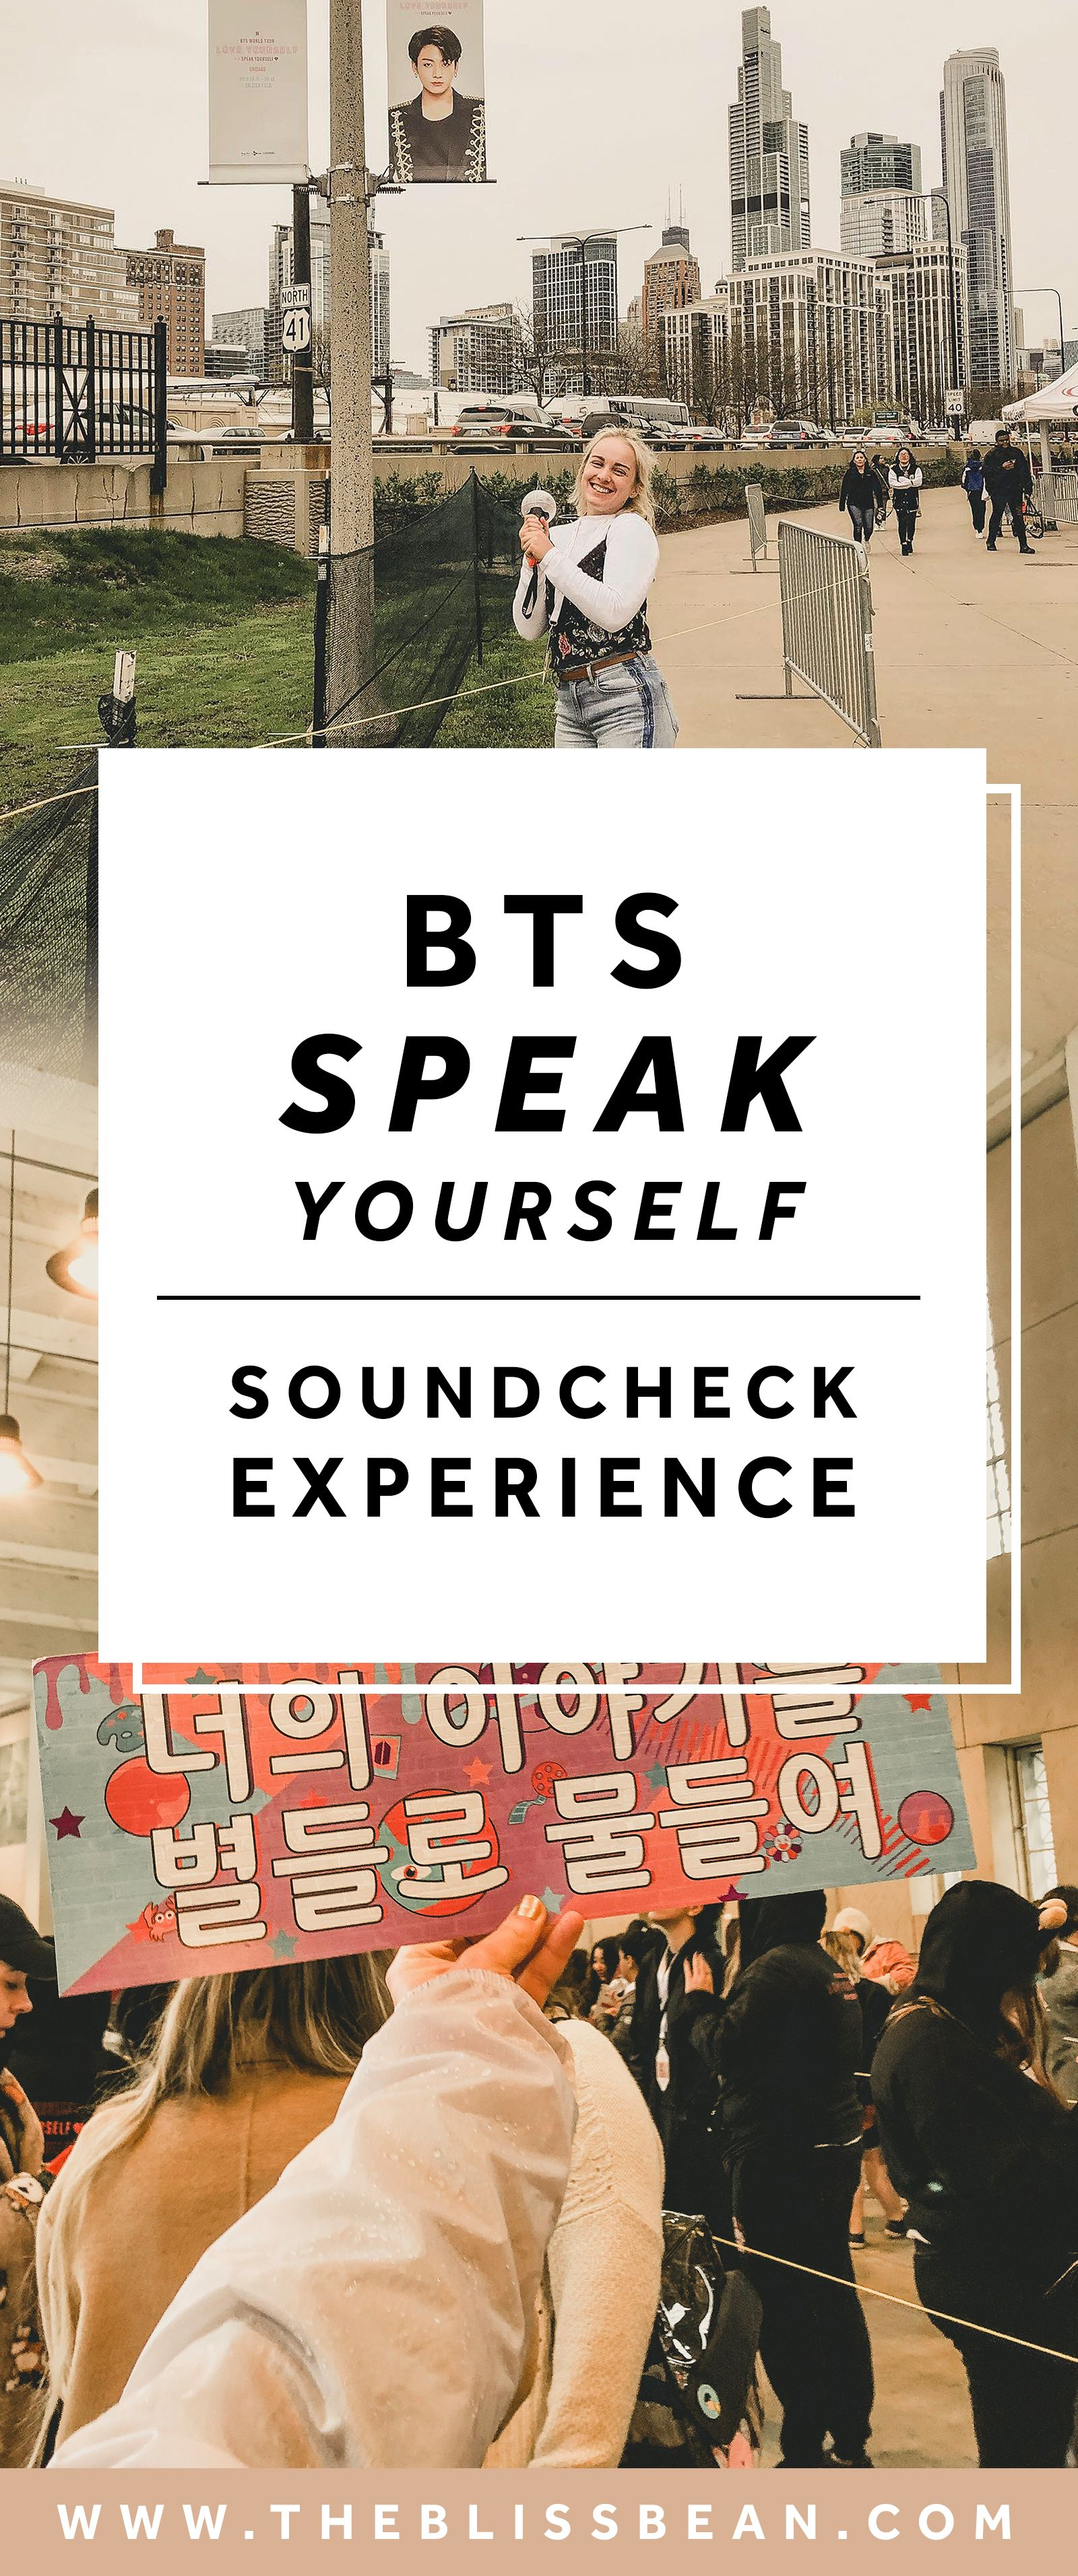 BTS concert experience | Love yourself Speak Yourself tour